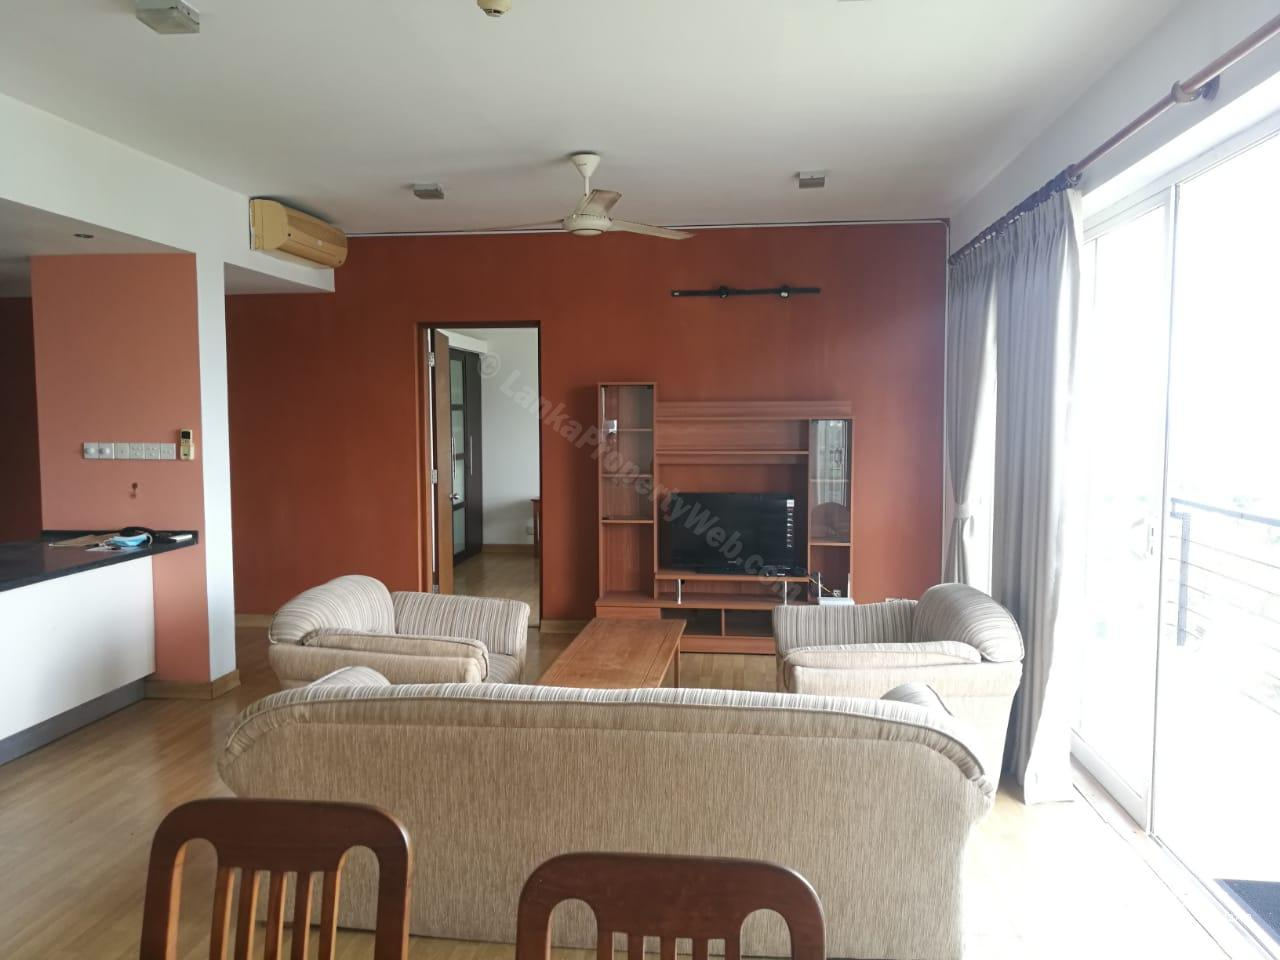 Apartment for rent in Rajagiriya - 3 Bedroom Apartment for ...